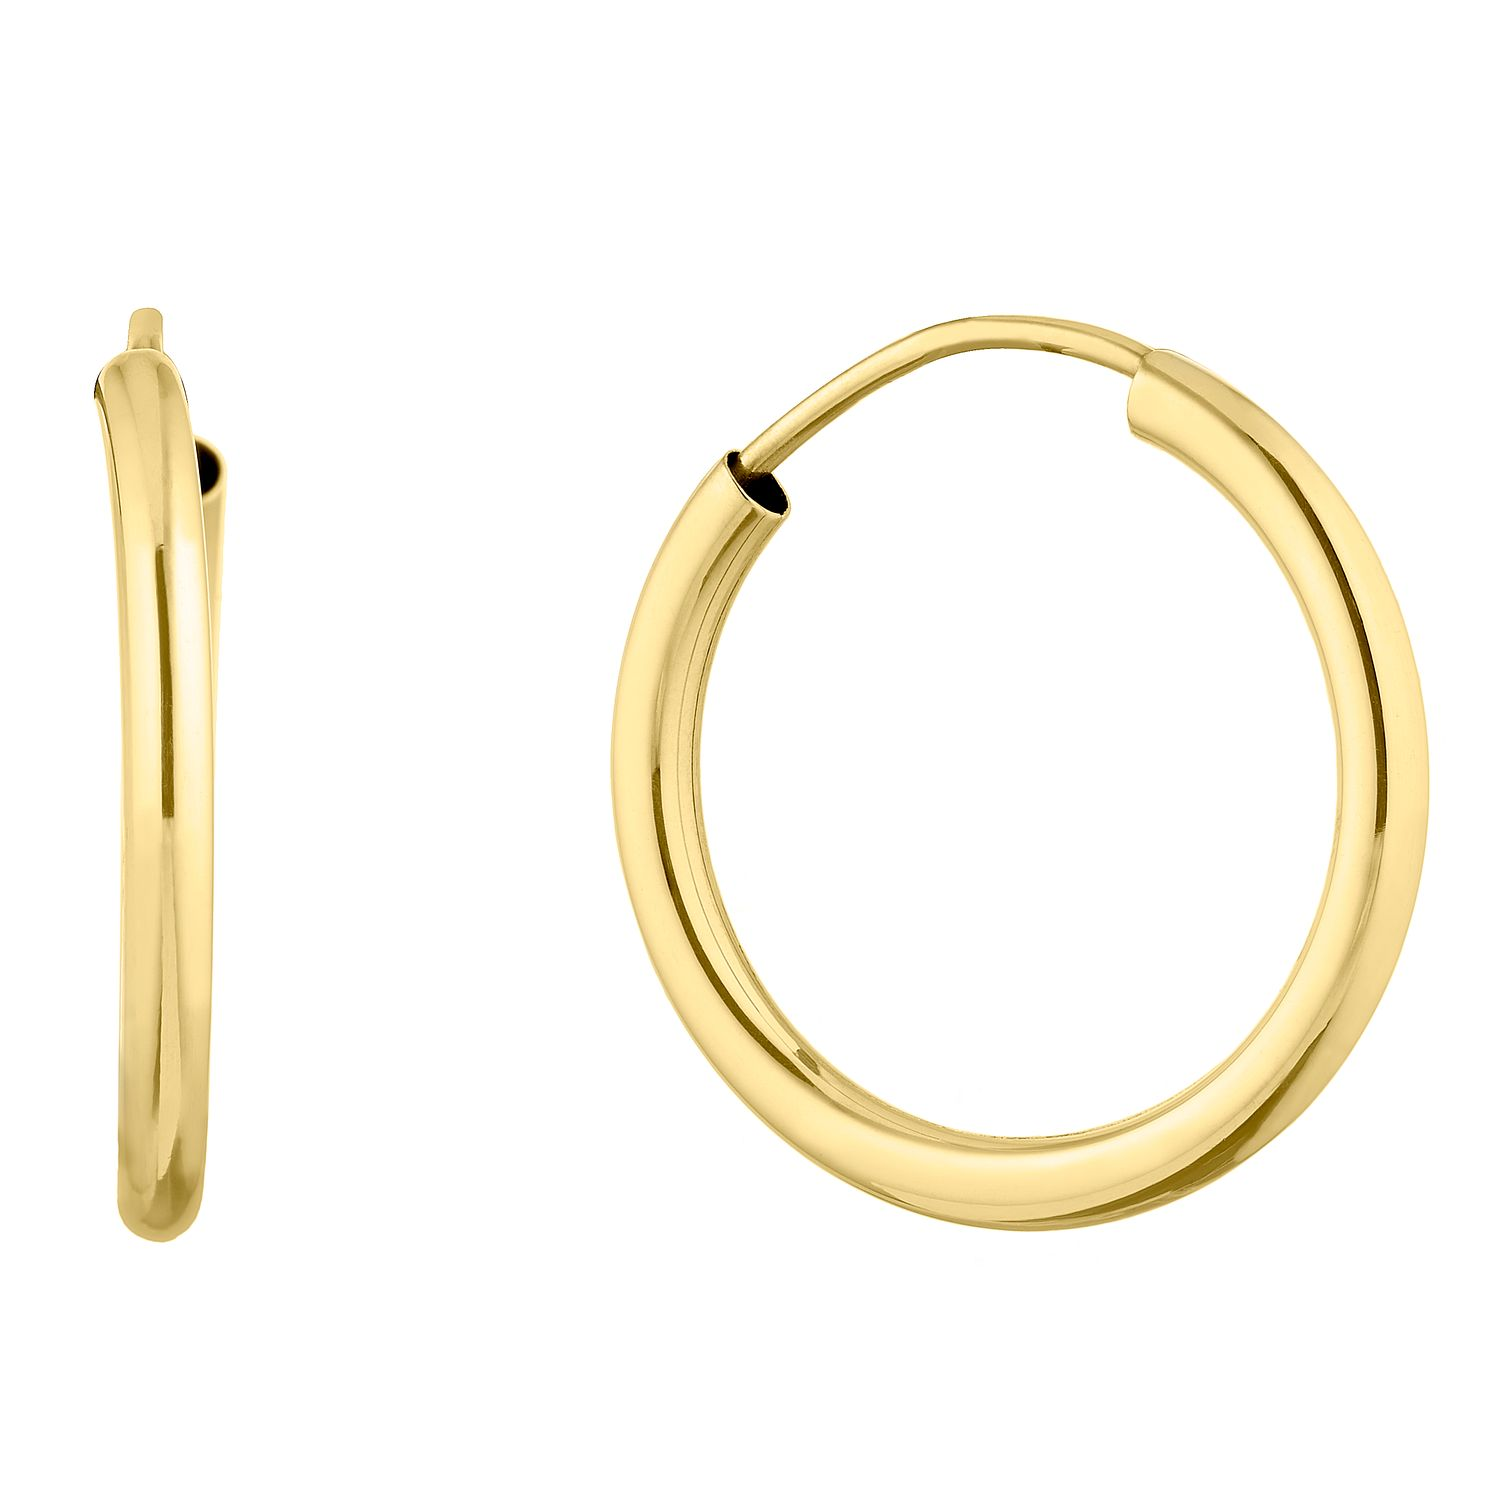 9ct Yellow Gold 16mm Sleeper Earrings - Product number 9665439